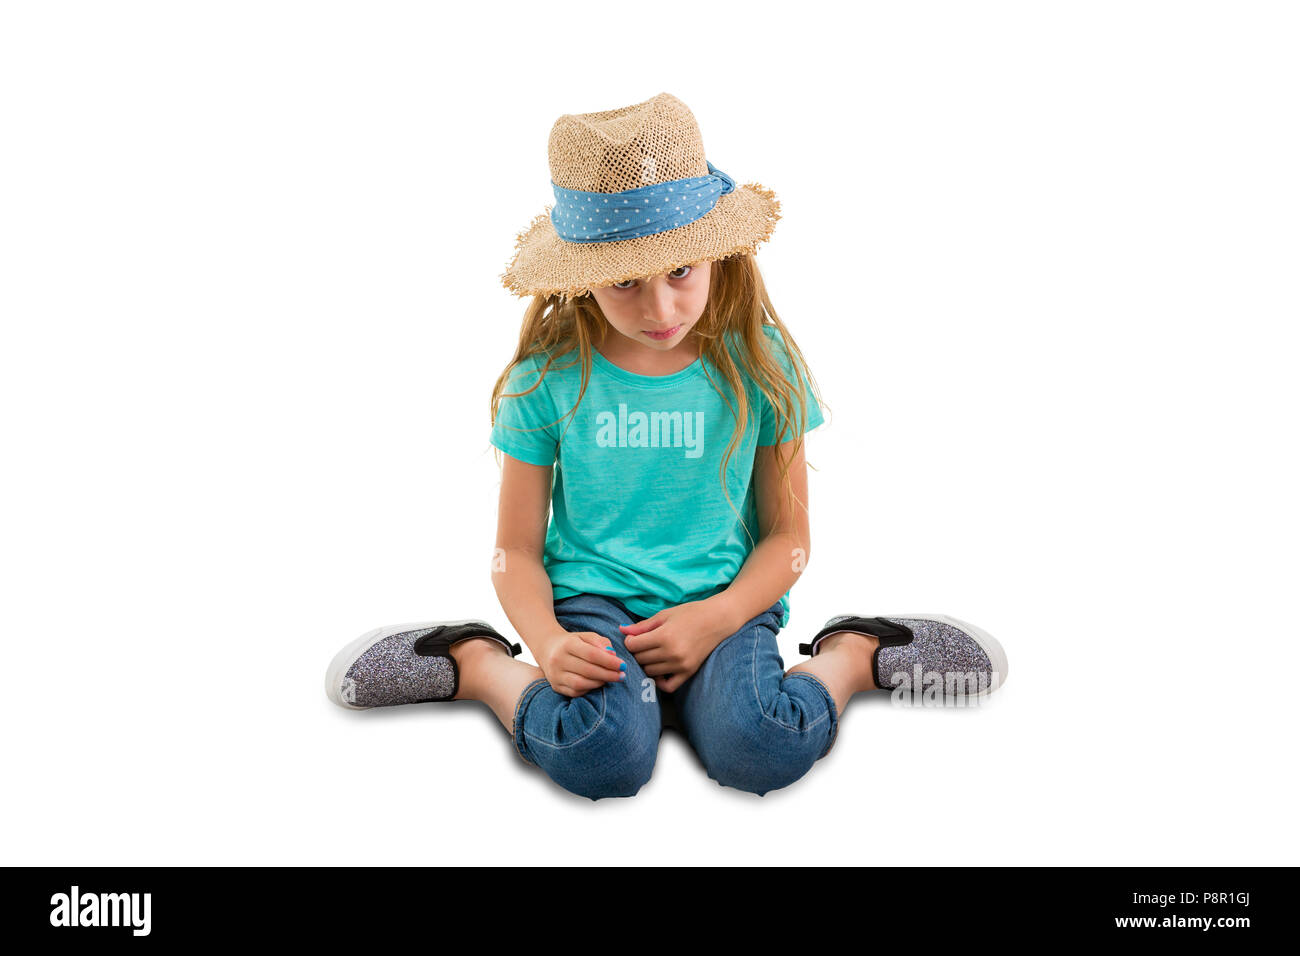 Guilty little girl sitting with her head bowed looking very contrite as she gazes down at the floor isolated on white with copy space - Stock Image